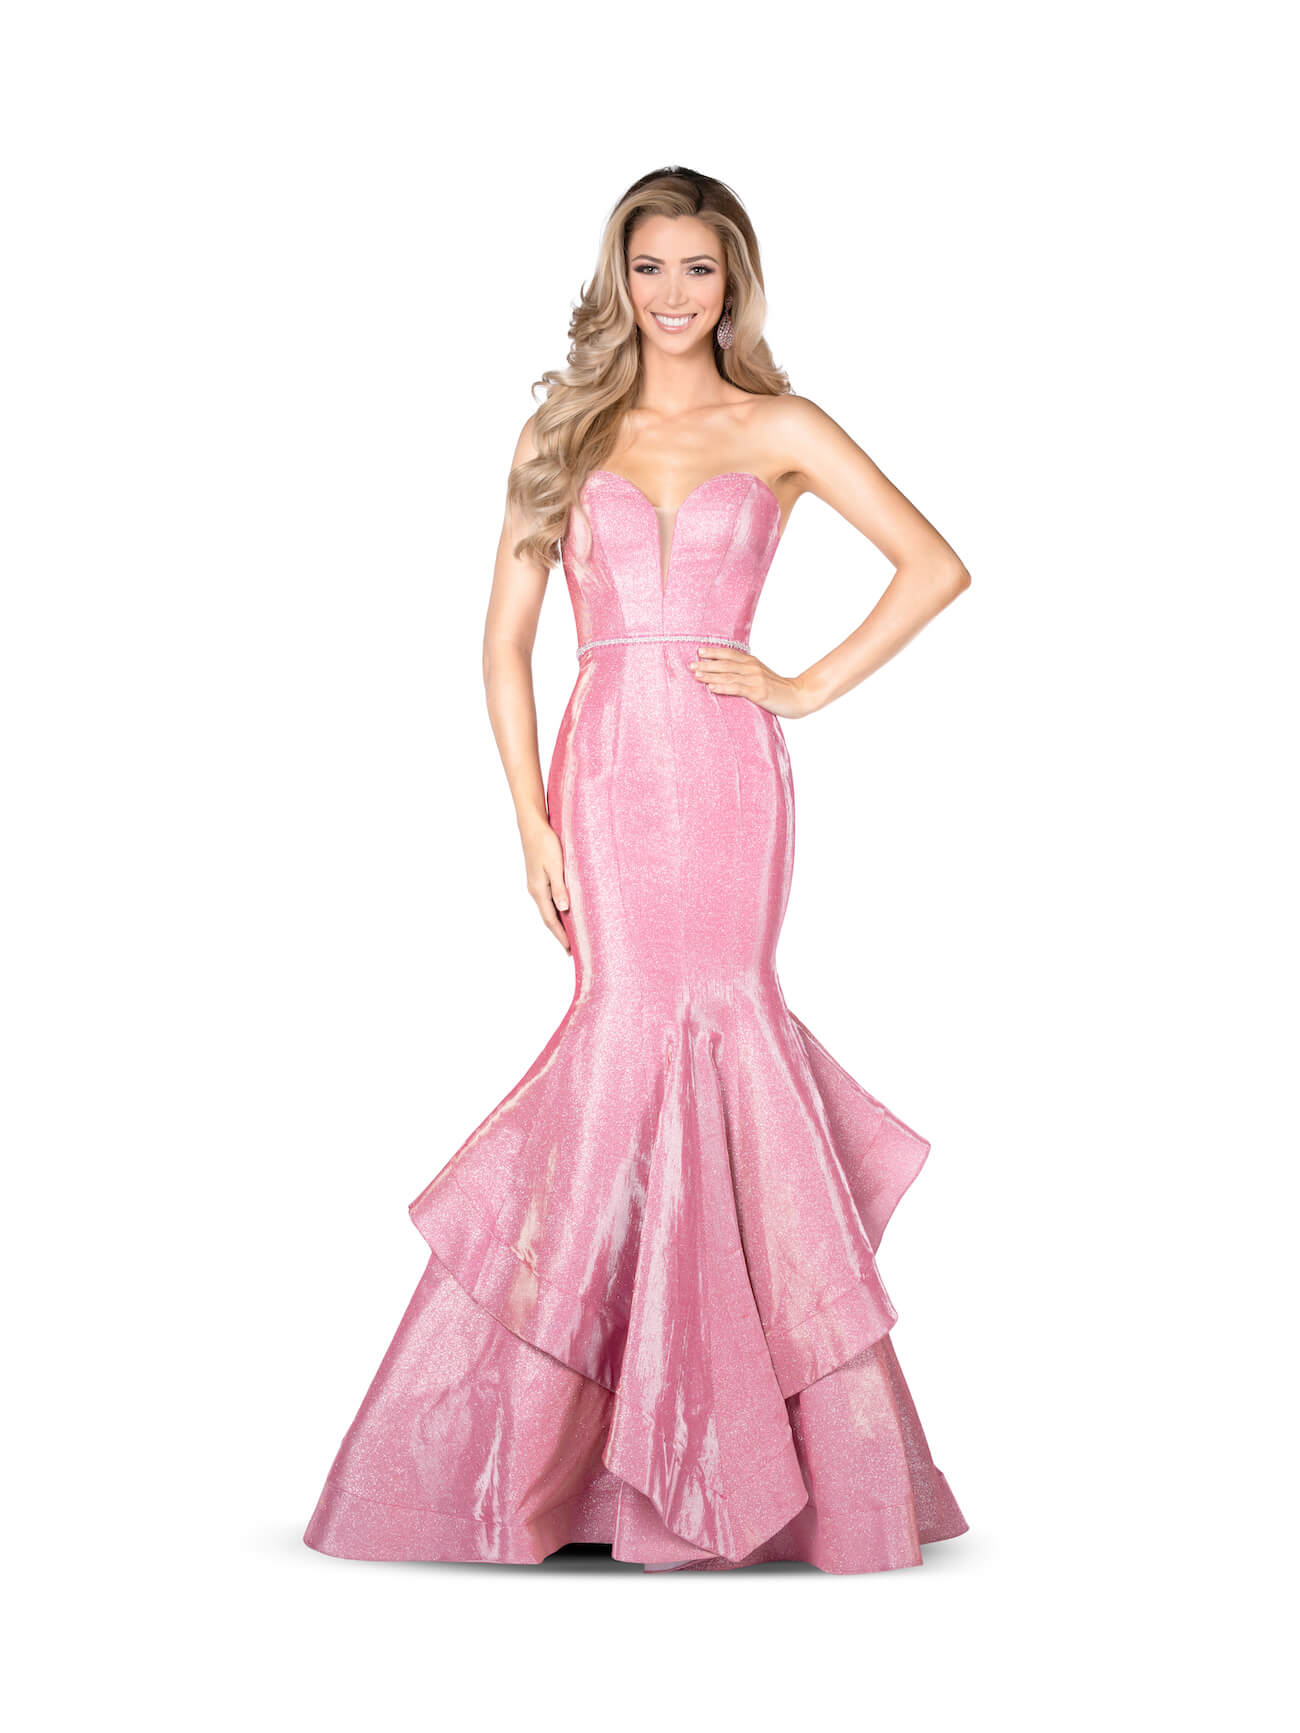 Vienna Pink Size 12 Tall Height Mermaid Dress on Queenly